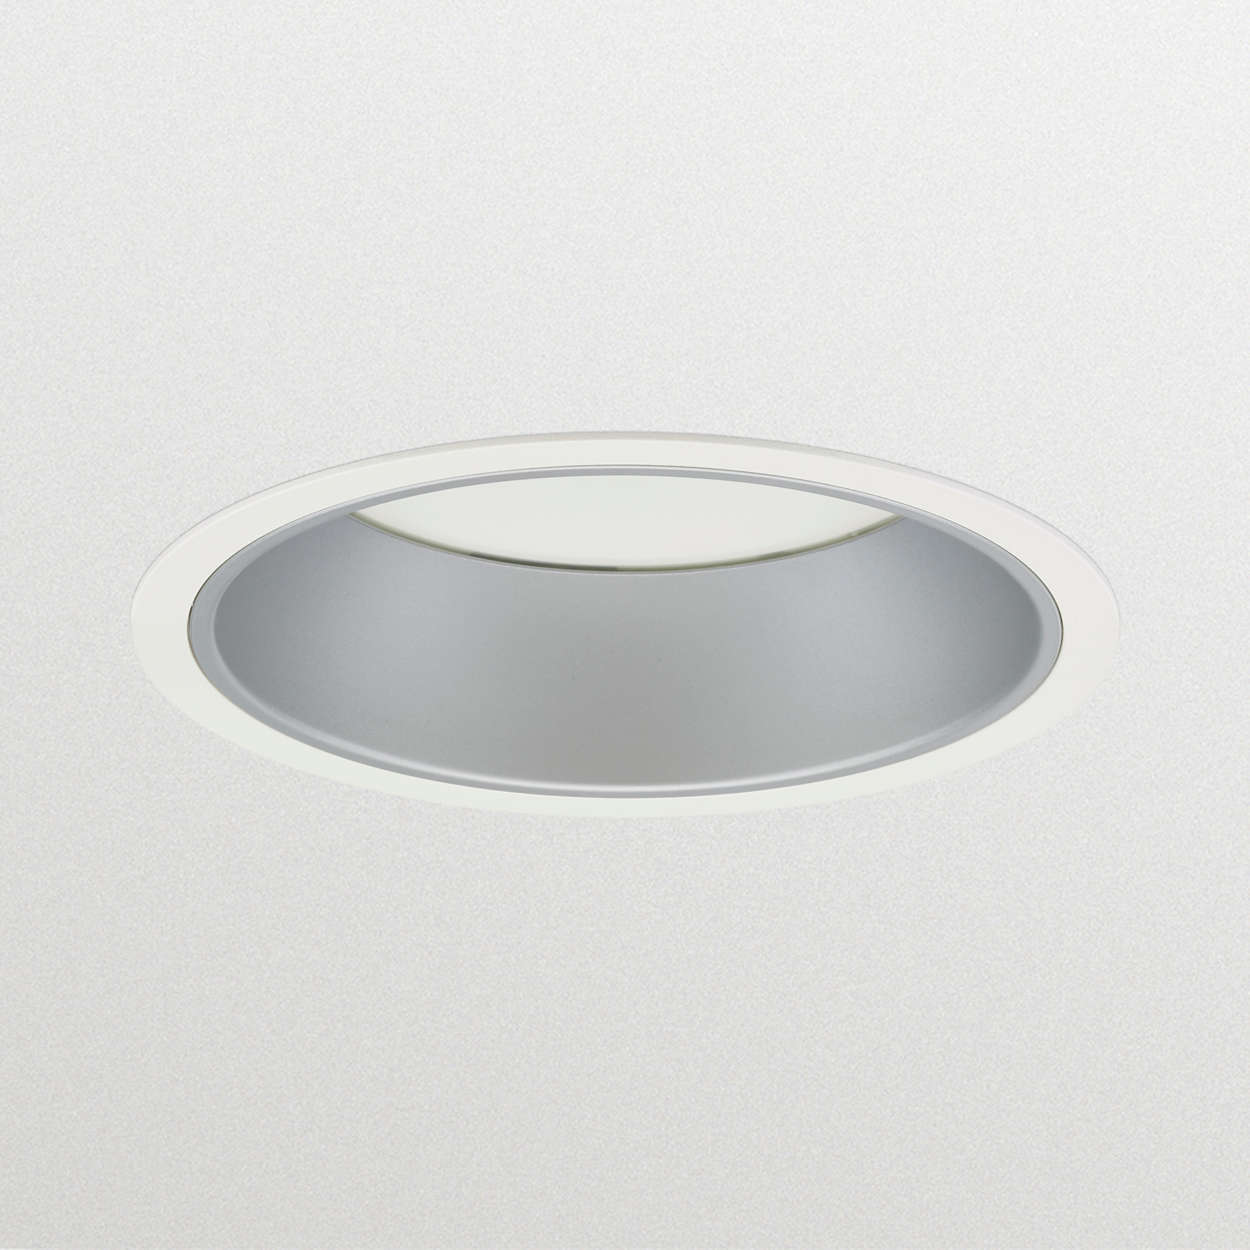 LuxSpace 2 recessed – high efficiency, visual comfort and a stylish design